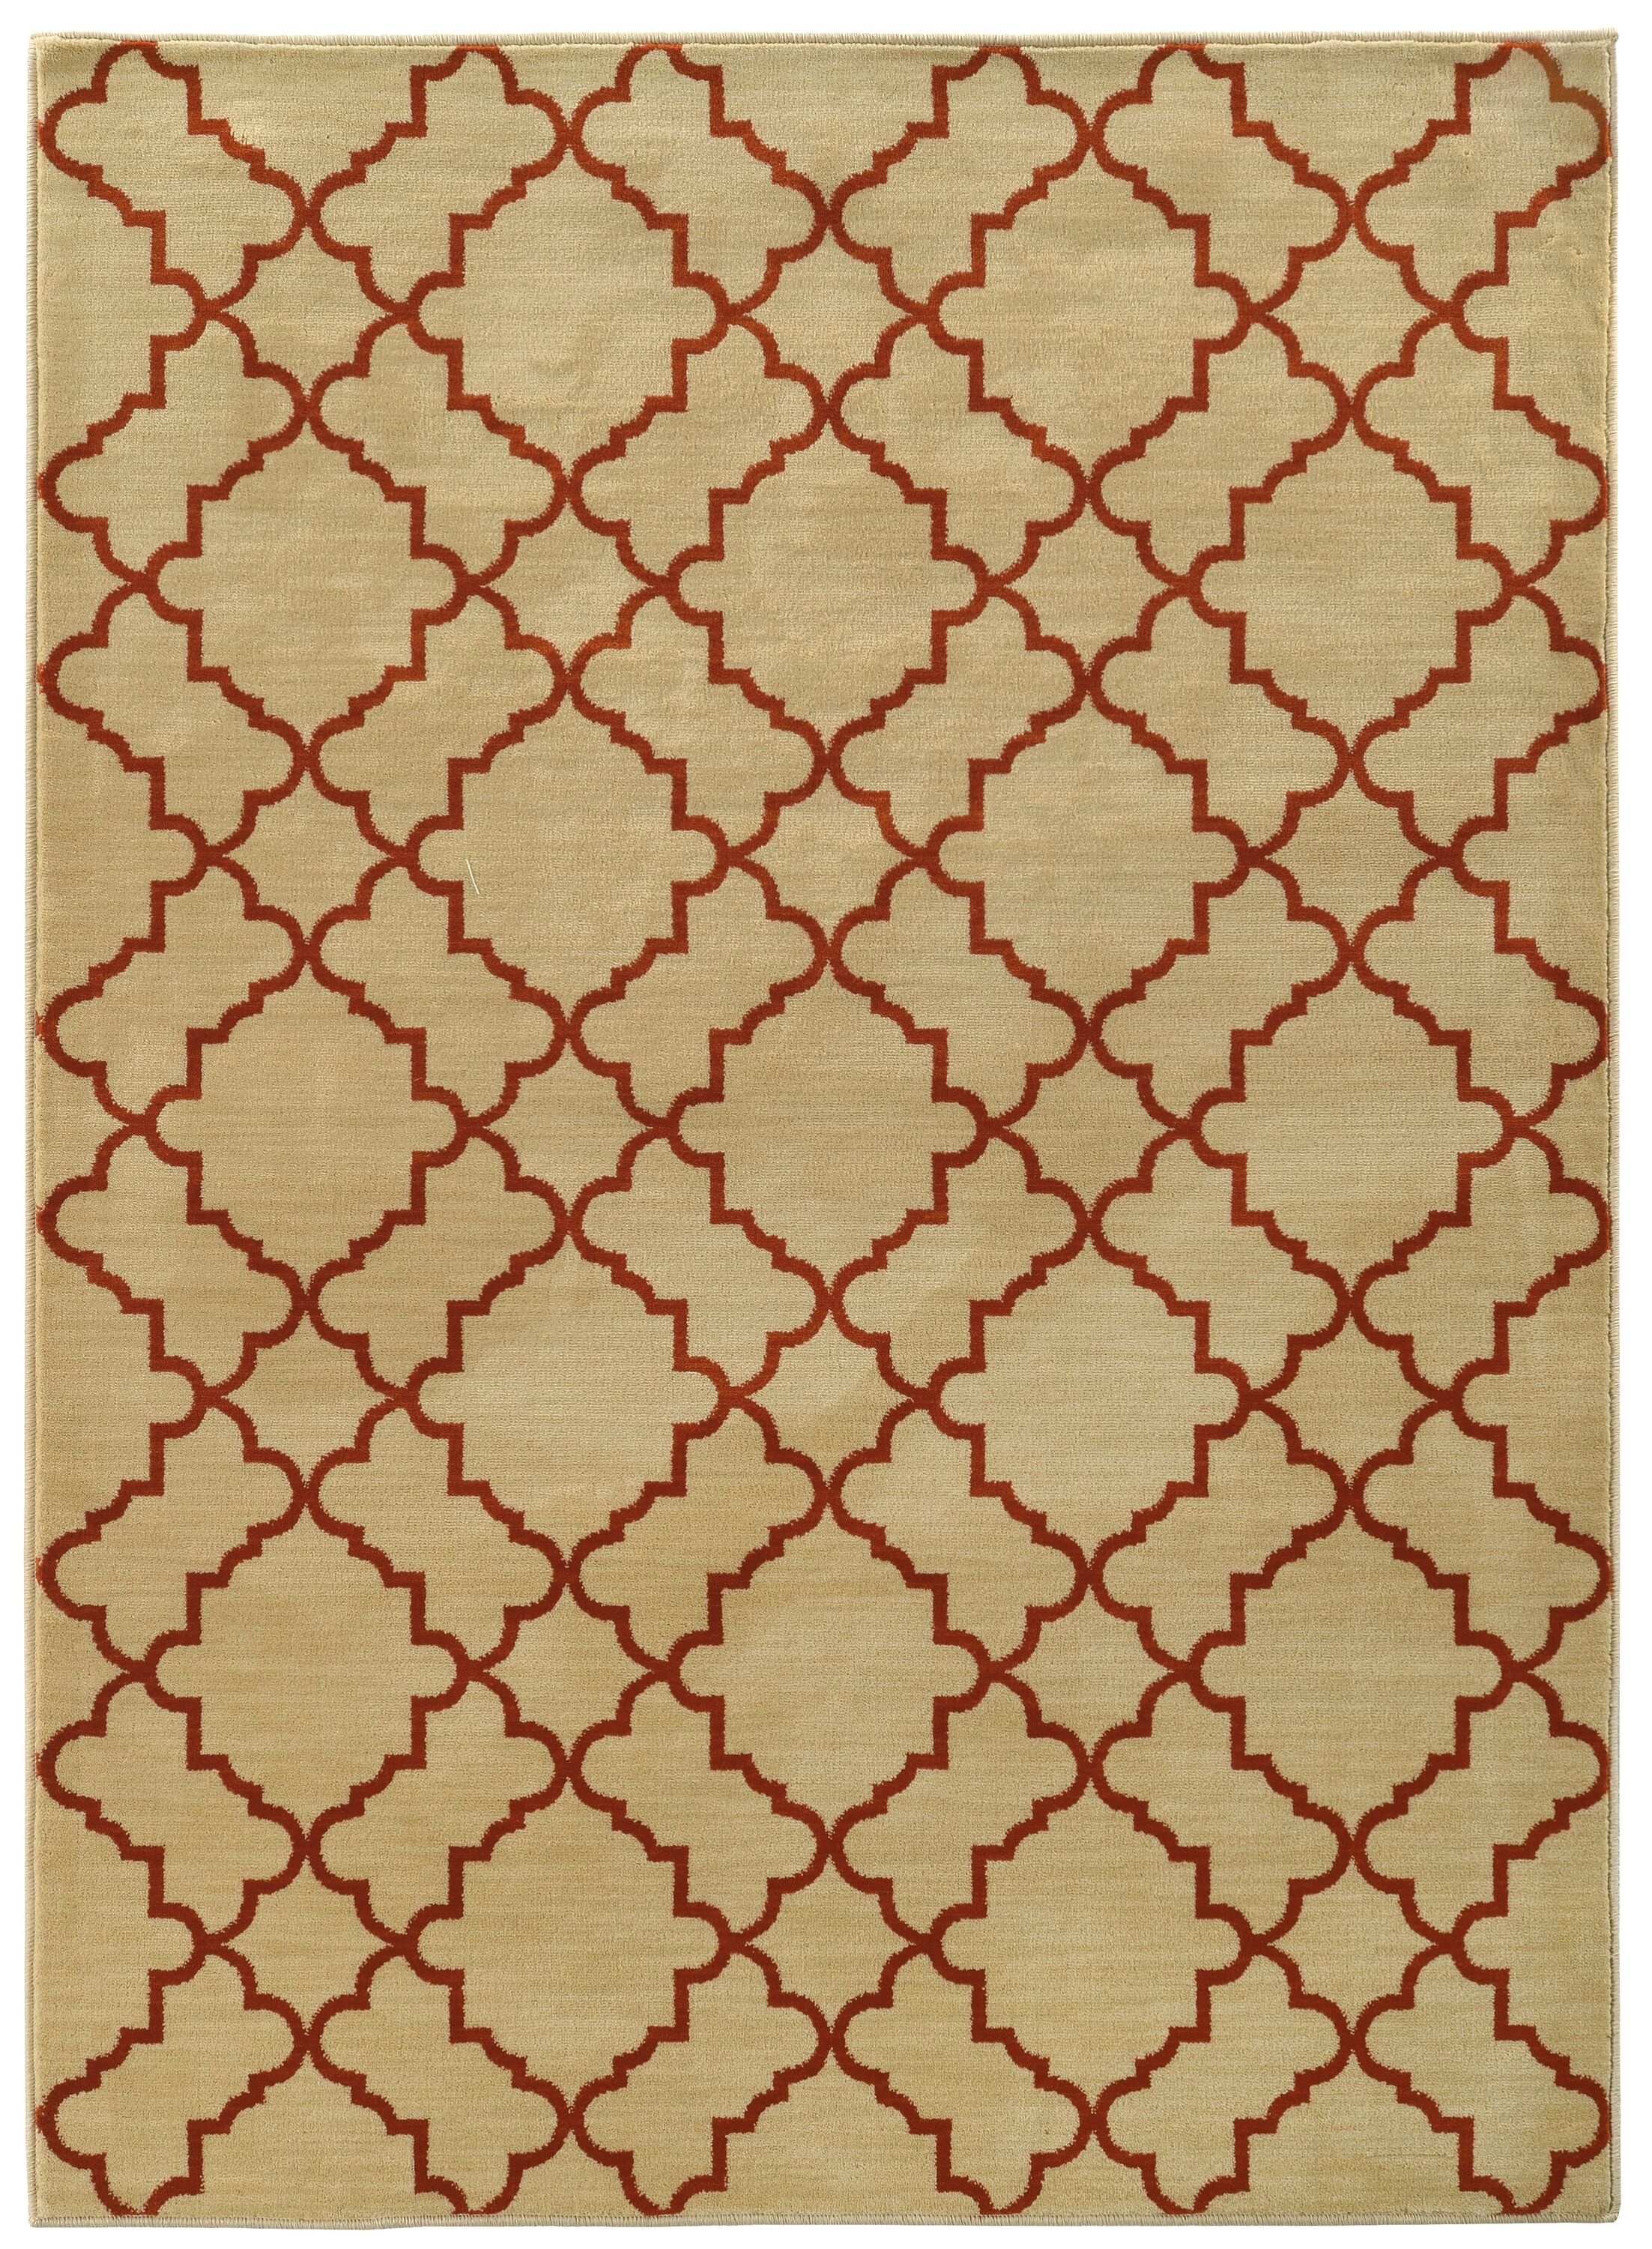 Dewolf Beige/Rust Area Rug Rug Size: Rectangle 7'10